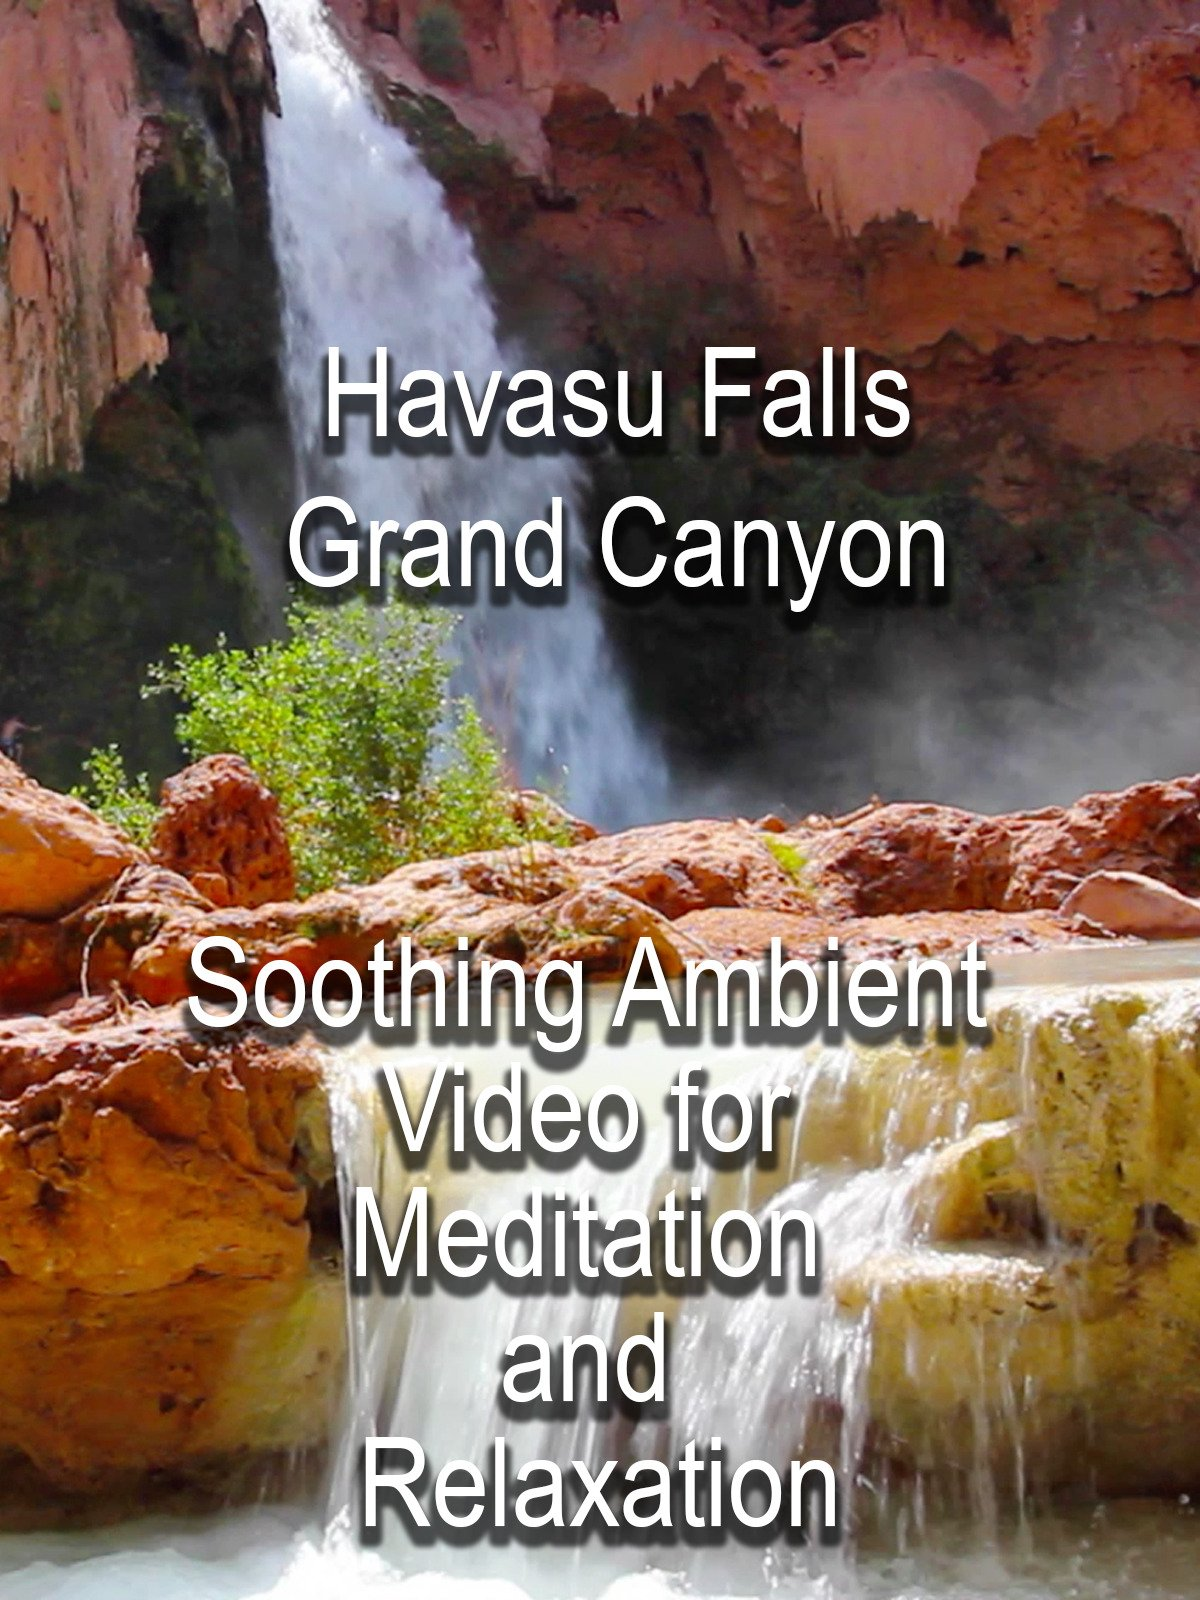 Havasu Falls Grand Canyon Soothing Ambient Video for Meditation and Relaxation